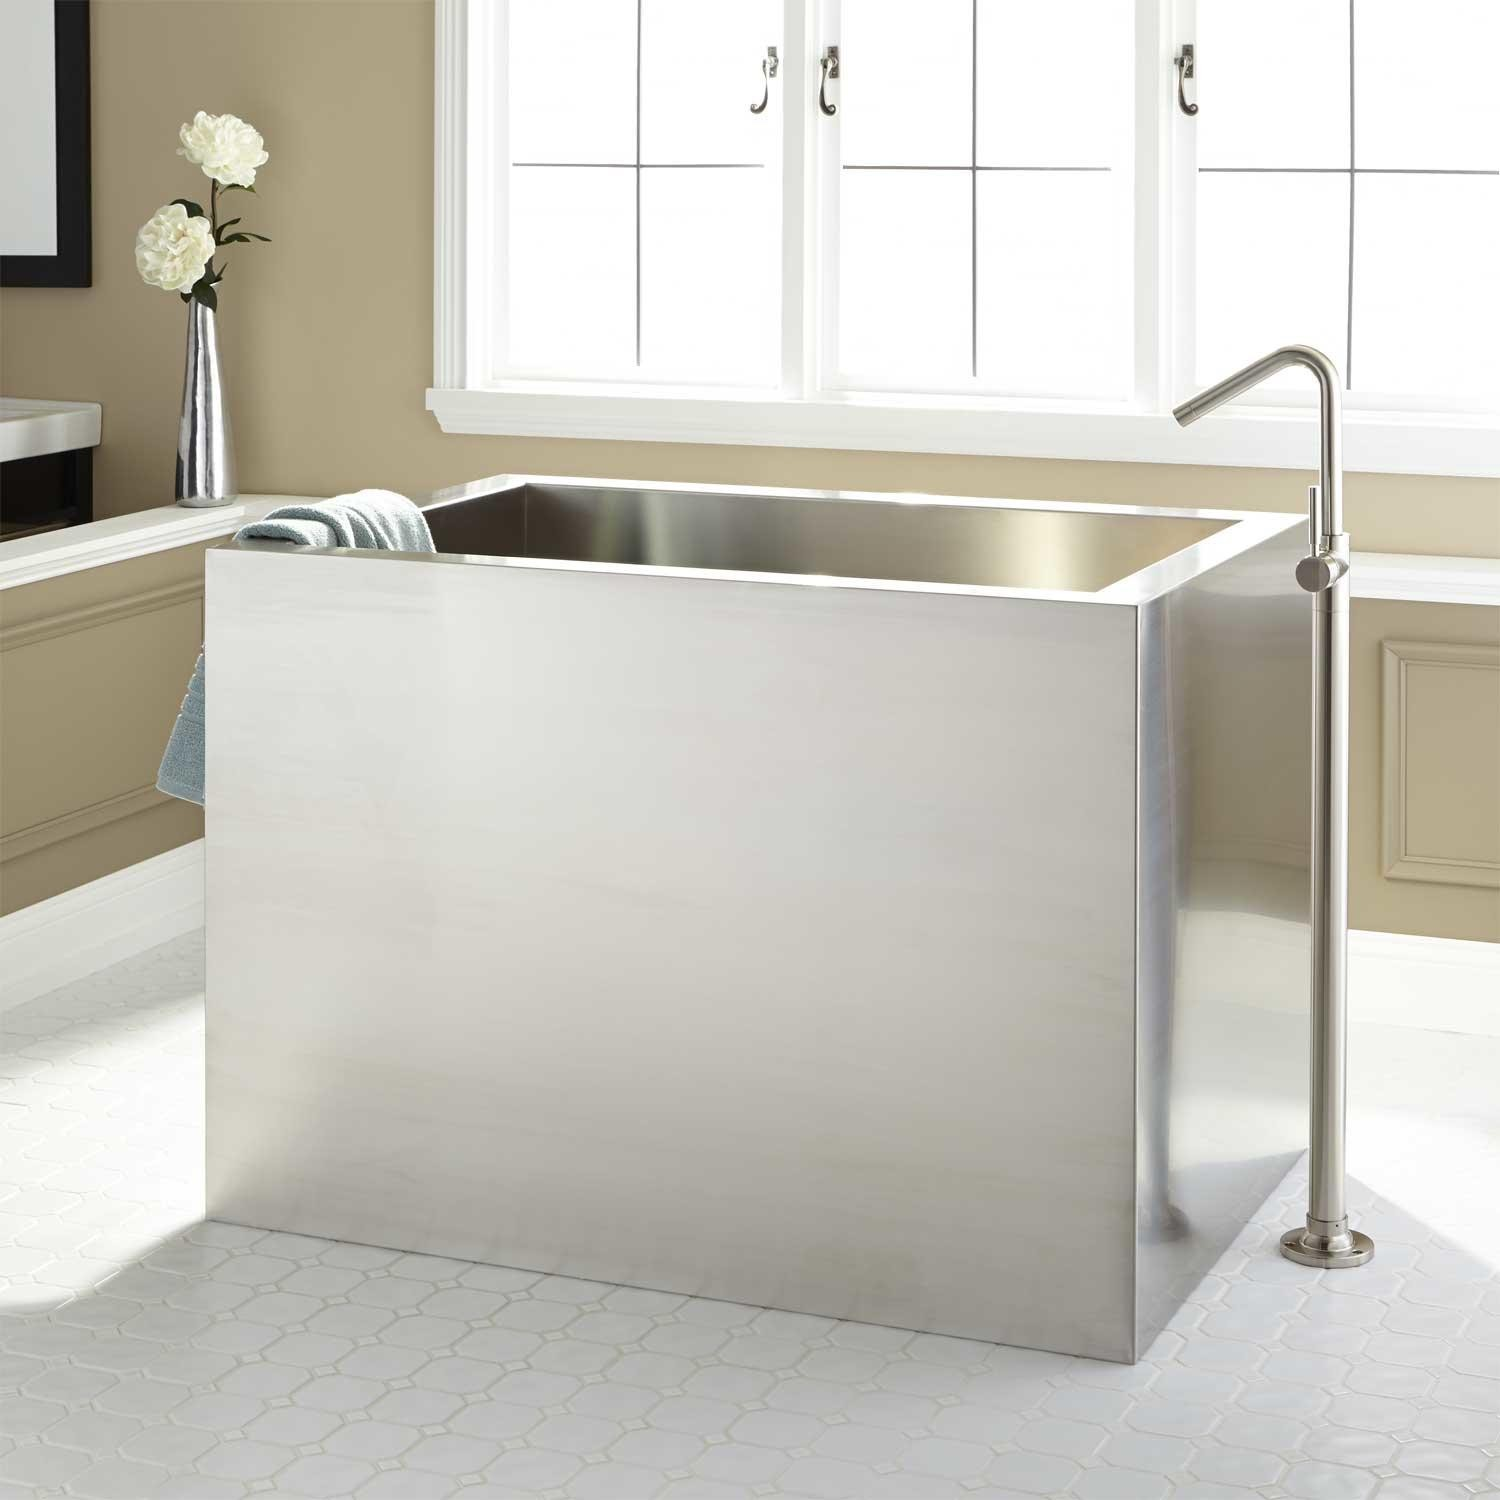 Deep Rectangular Soaking Tubs | Tyres2c